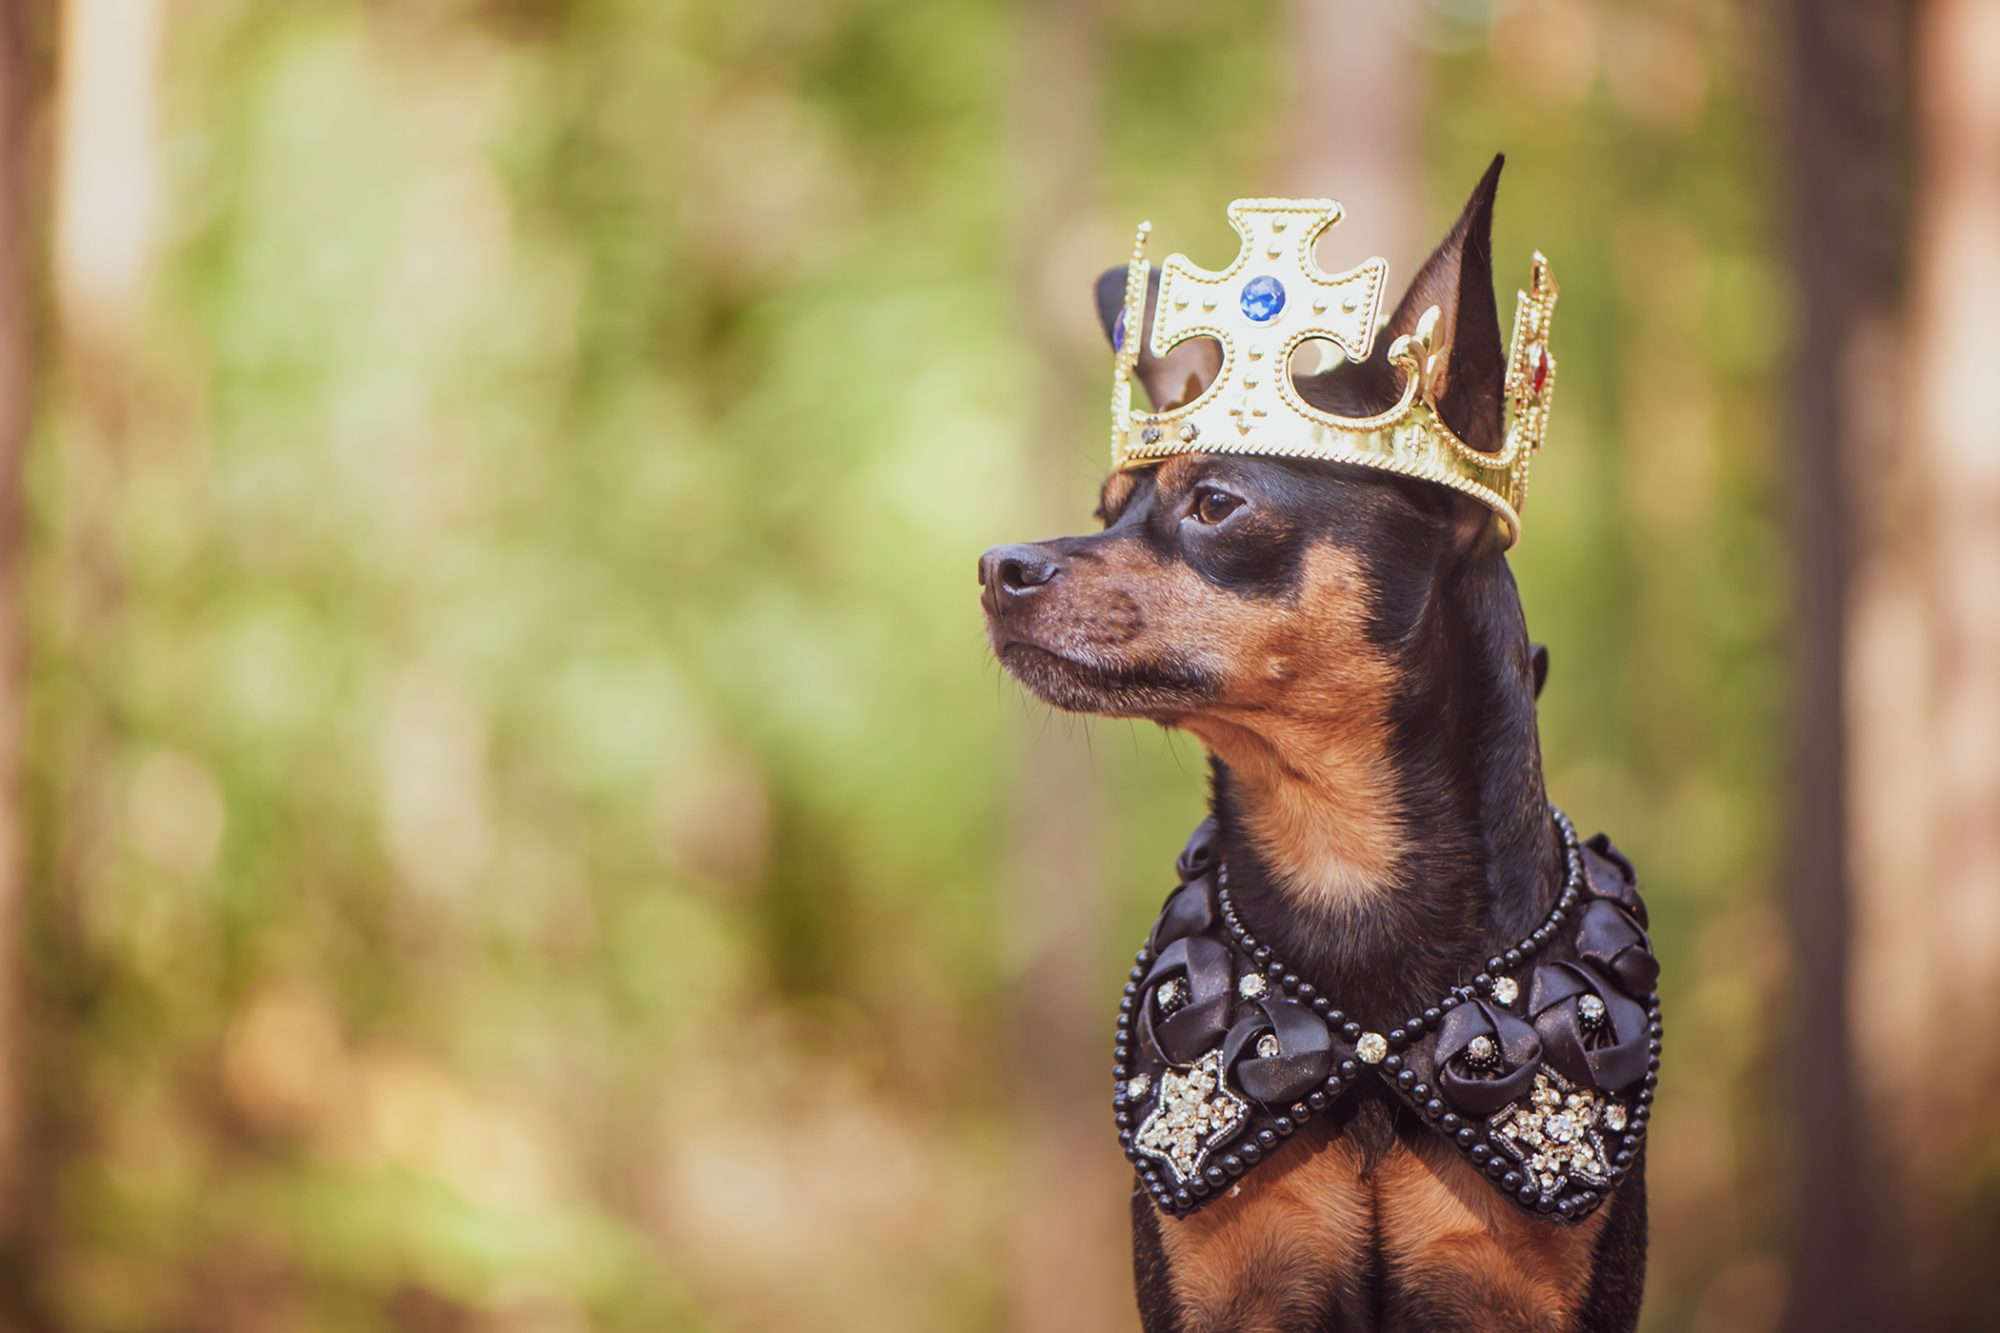 Profile shot of black and tan terrier wearing a crown and bejeweled cape against a forest background